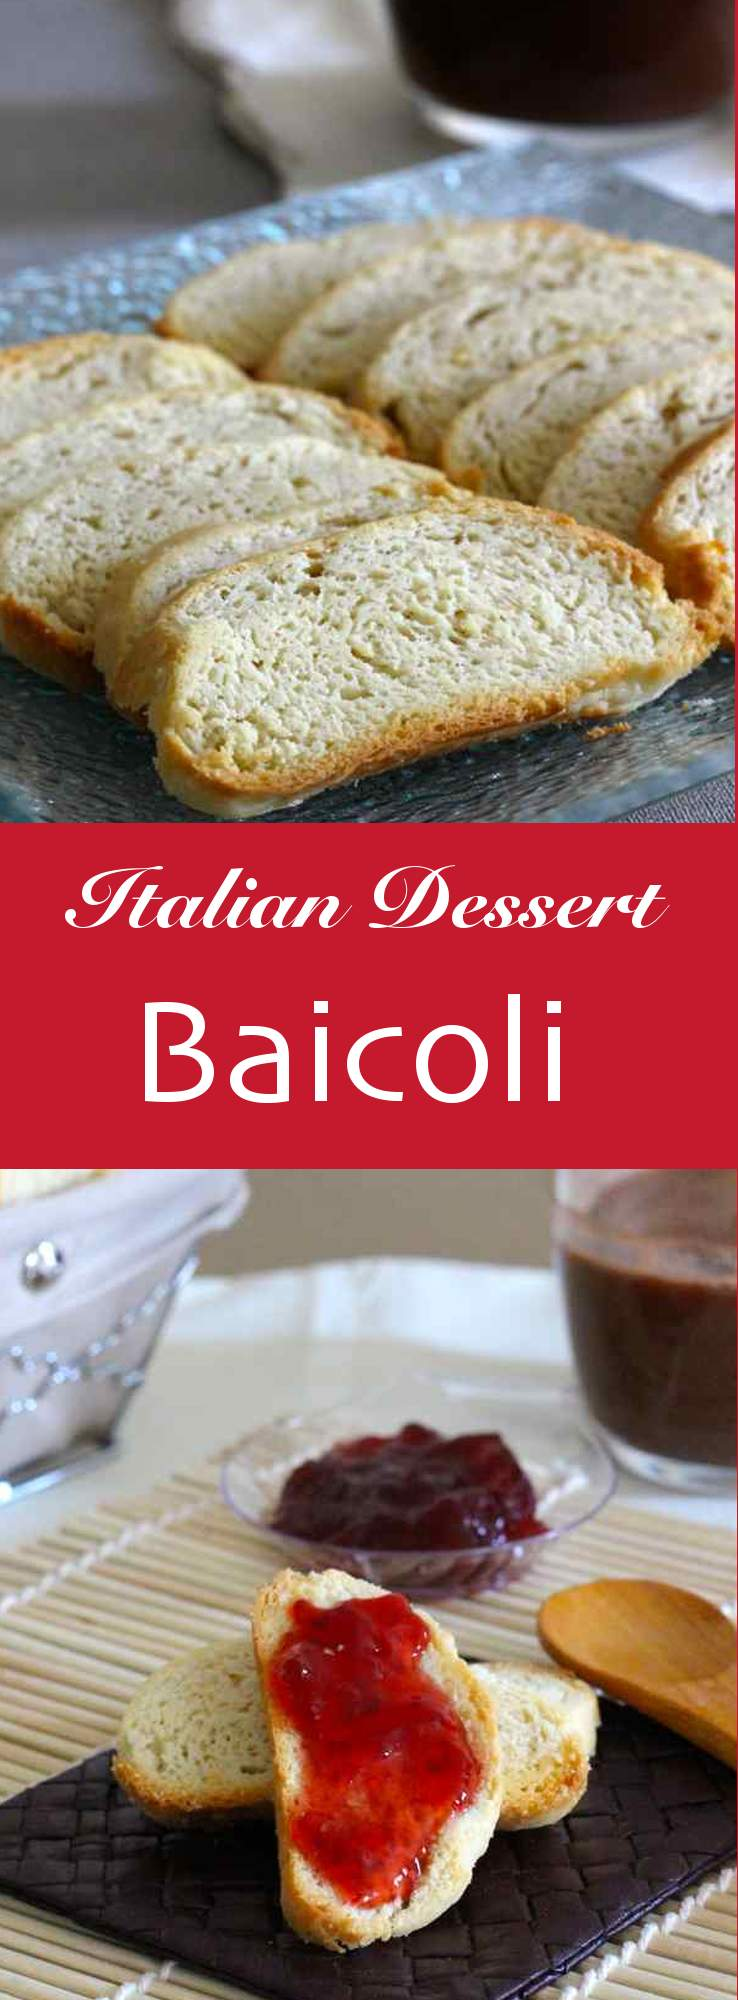 Baicoli are Italian biscuits originally from Venice and often served with zabaglione and coffee.